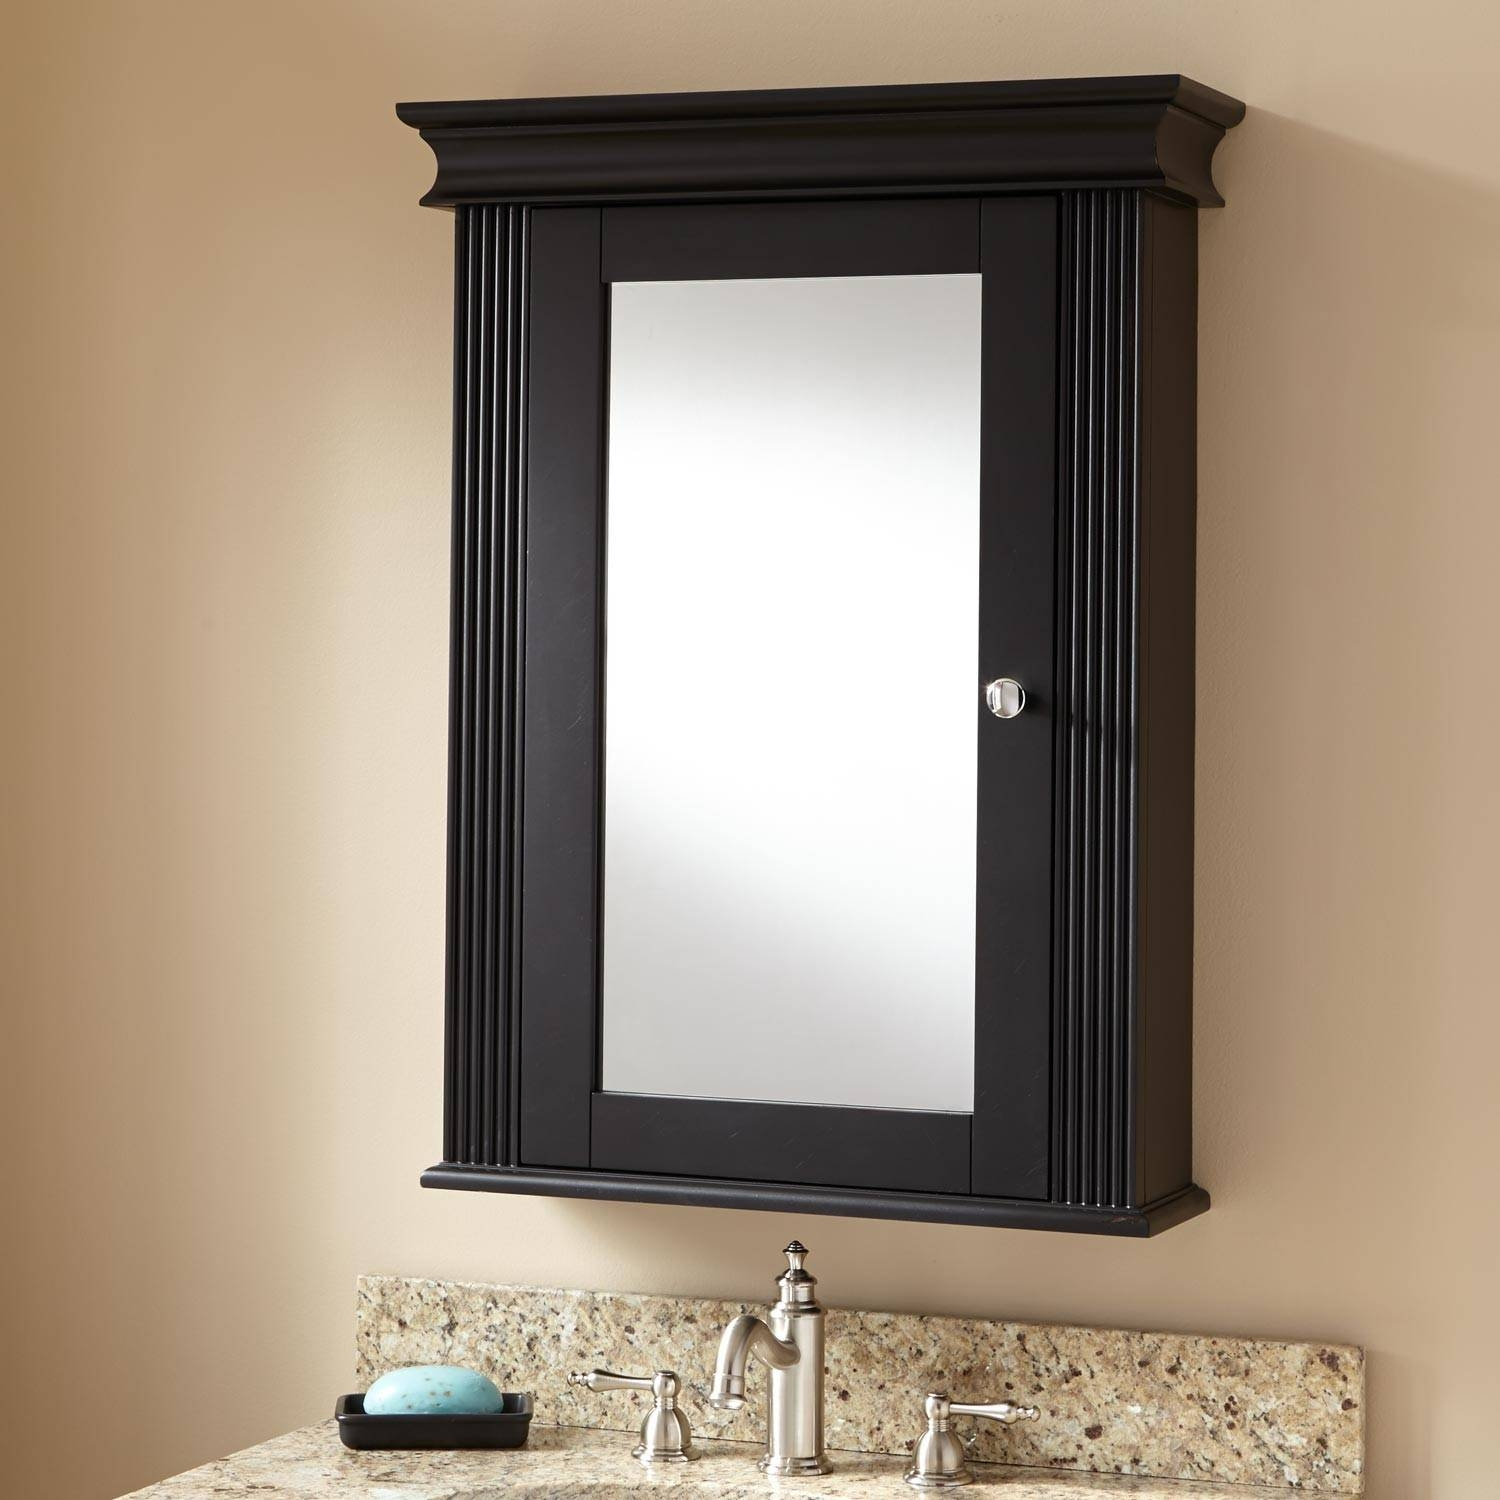 Bathroom Mirror Cabinet Bunnings 2016 Bathroom Ideas Designs Intended For Black Cabinet Mirrors (View 3 of 15)